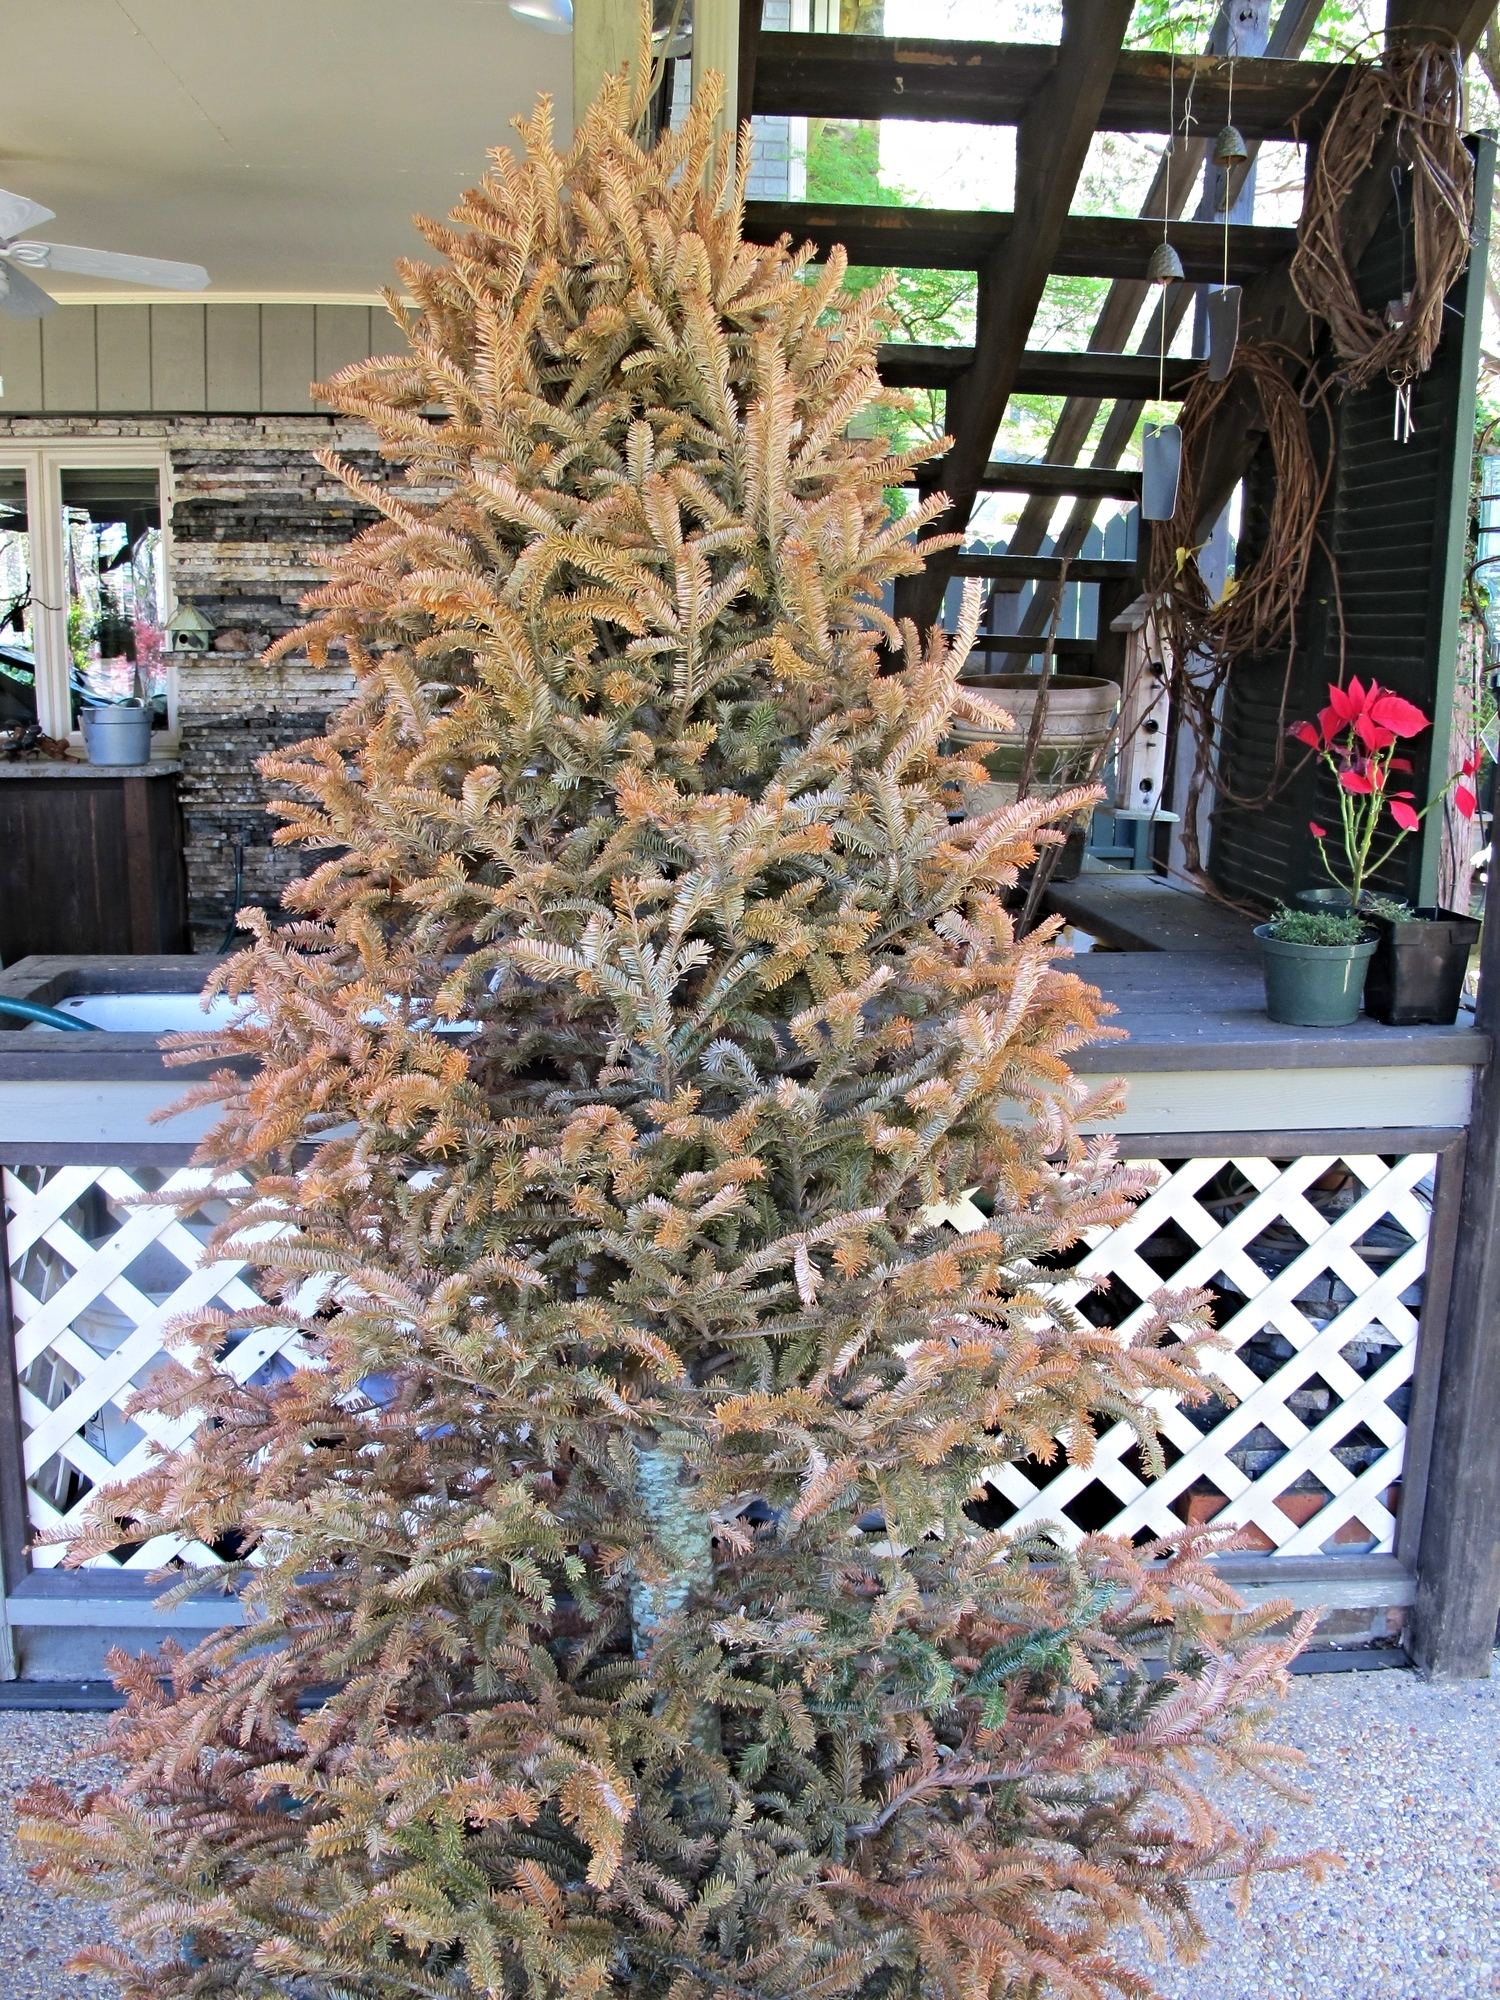 Recycle old Christmas Trees for rest of the winter outside by standing close to your feeders.  Birds will use for shelter and makes a great photo background.  In the Spring, the dried out tree can be made into suet log feeders.